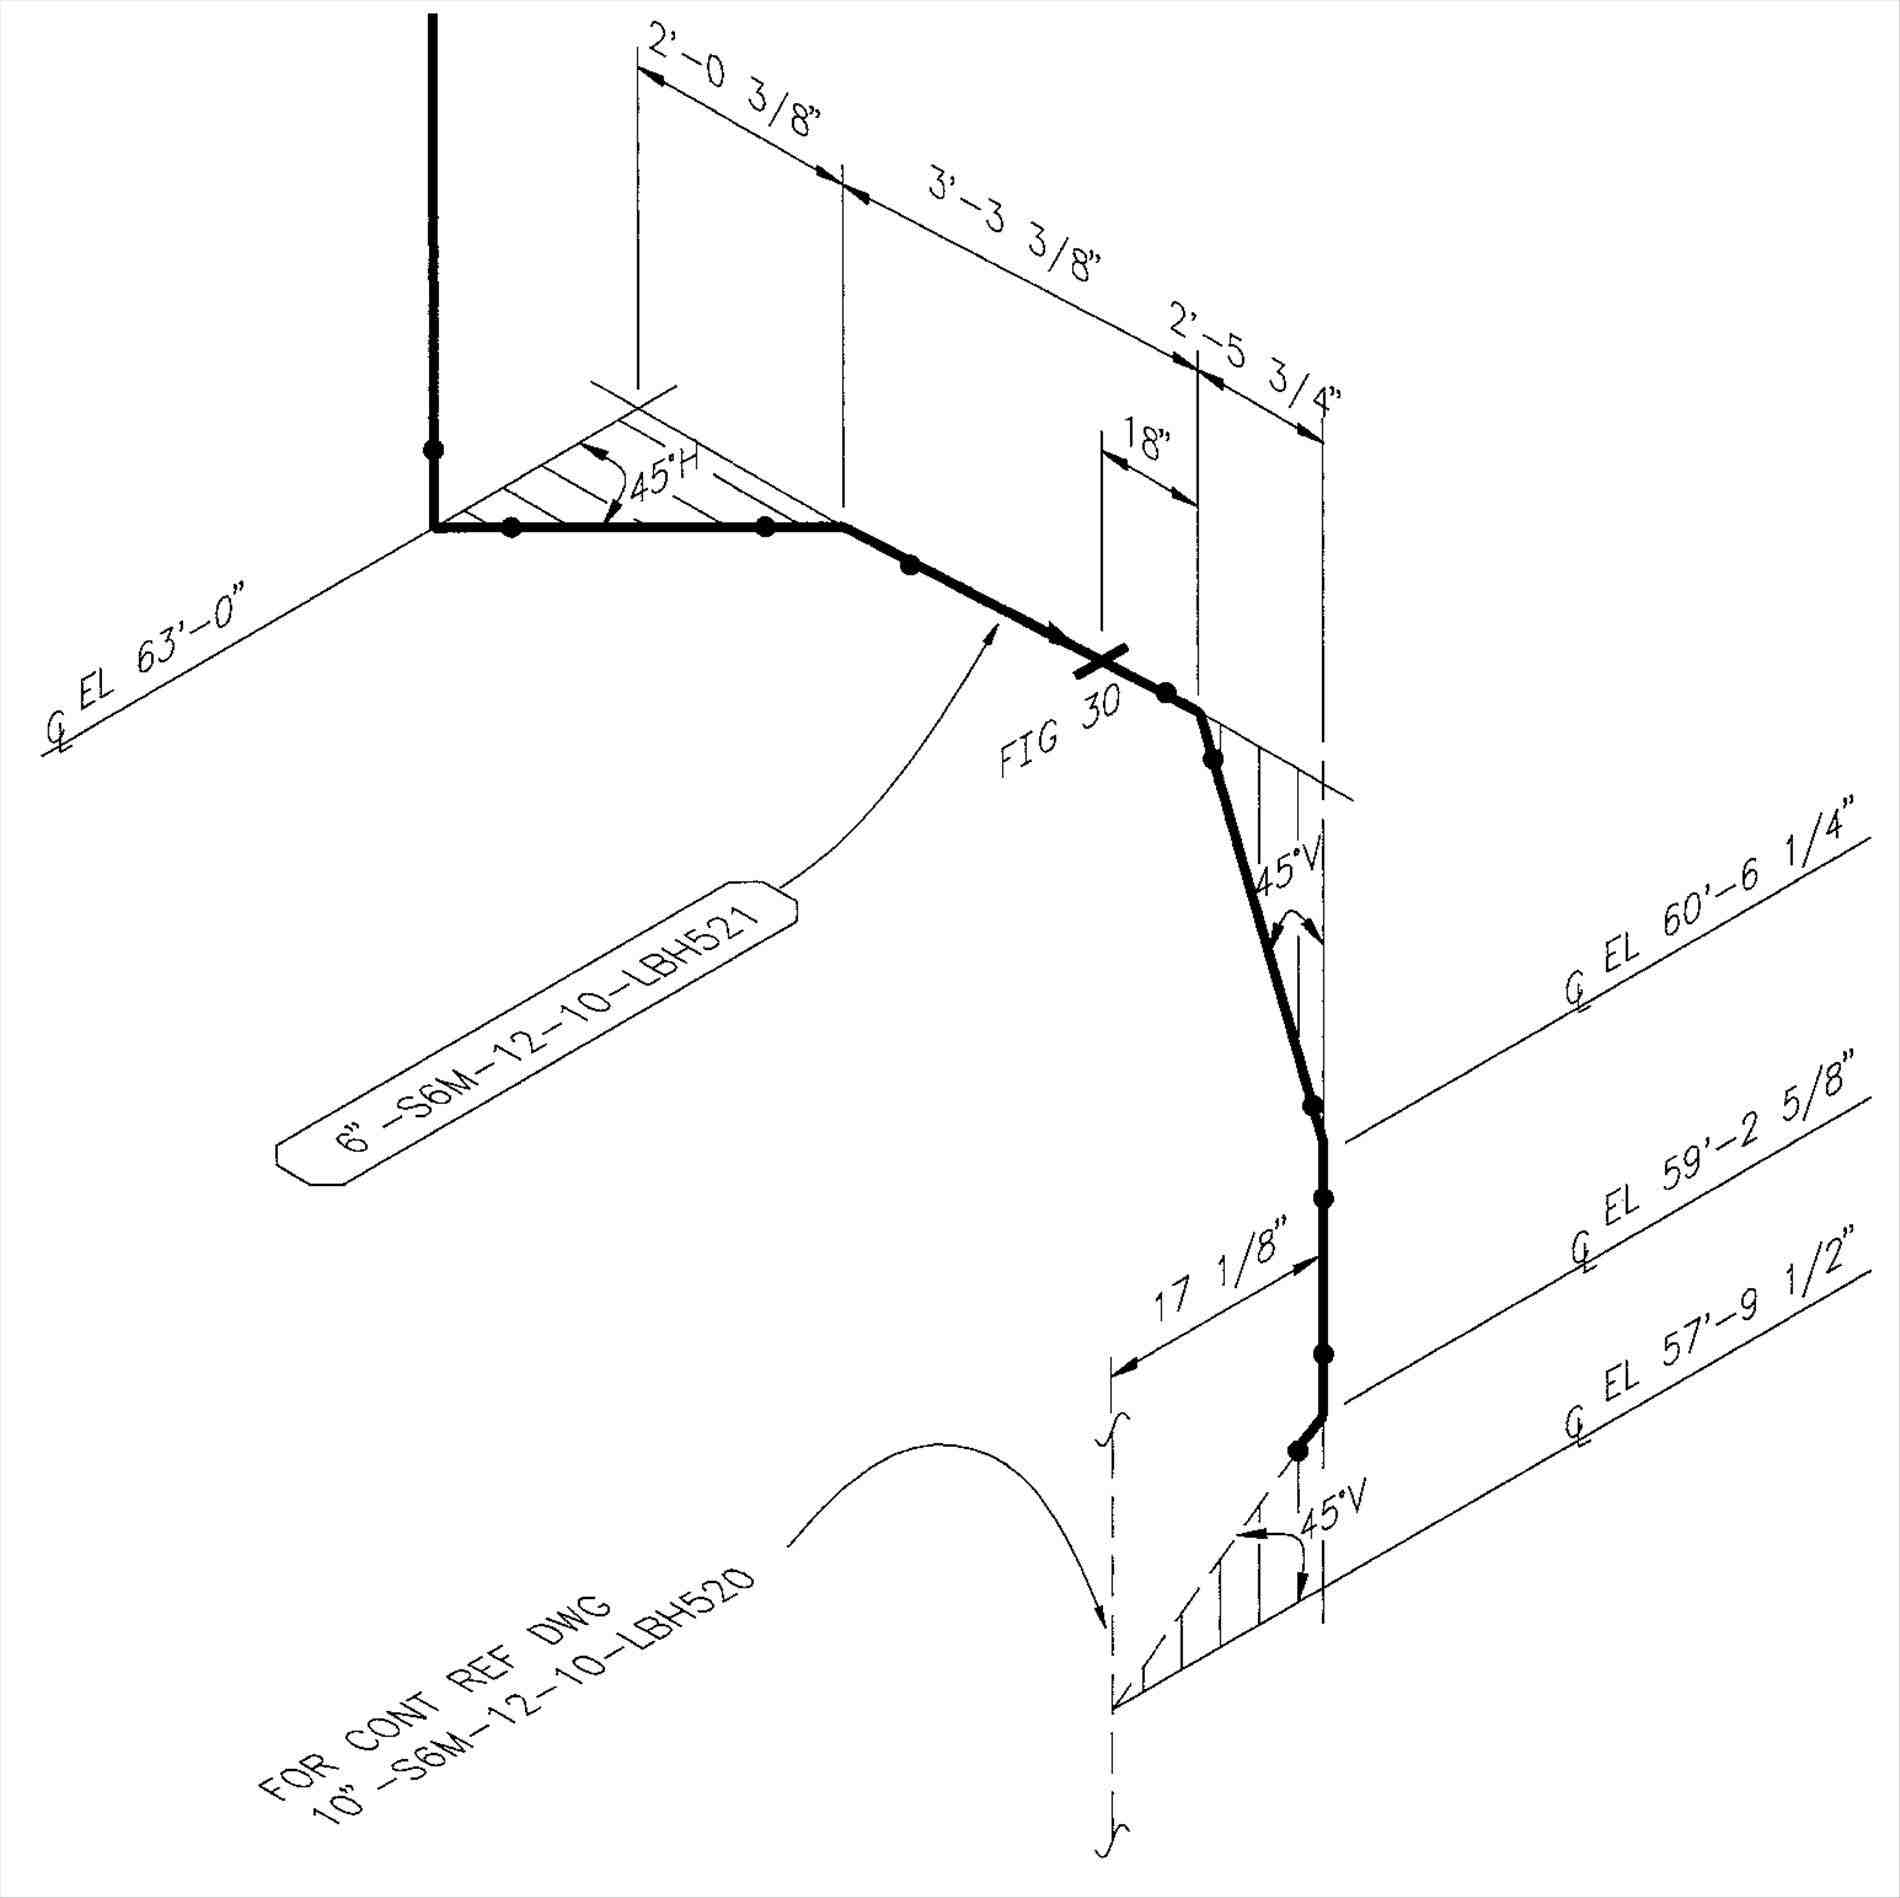 hight resolution of 1900x1898 famous piping diagrams images